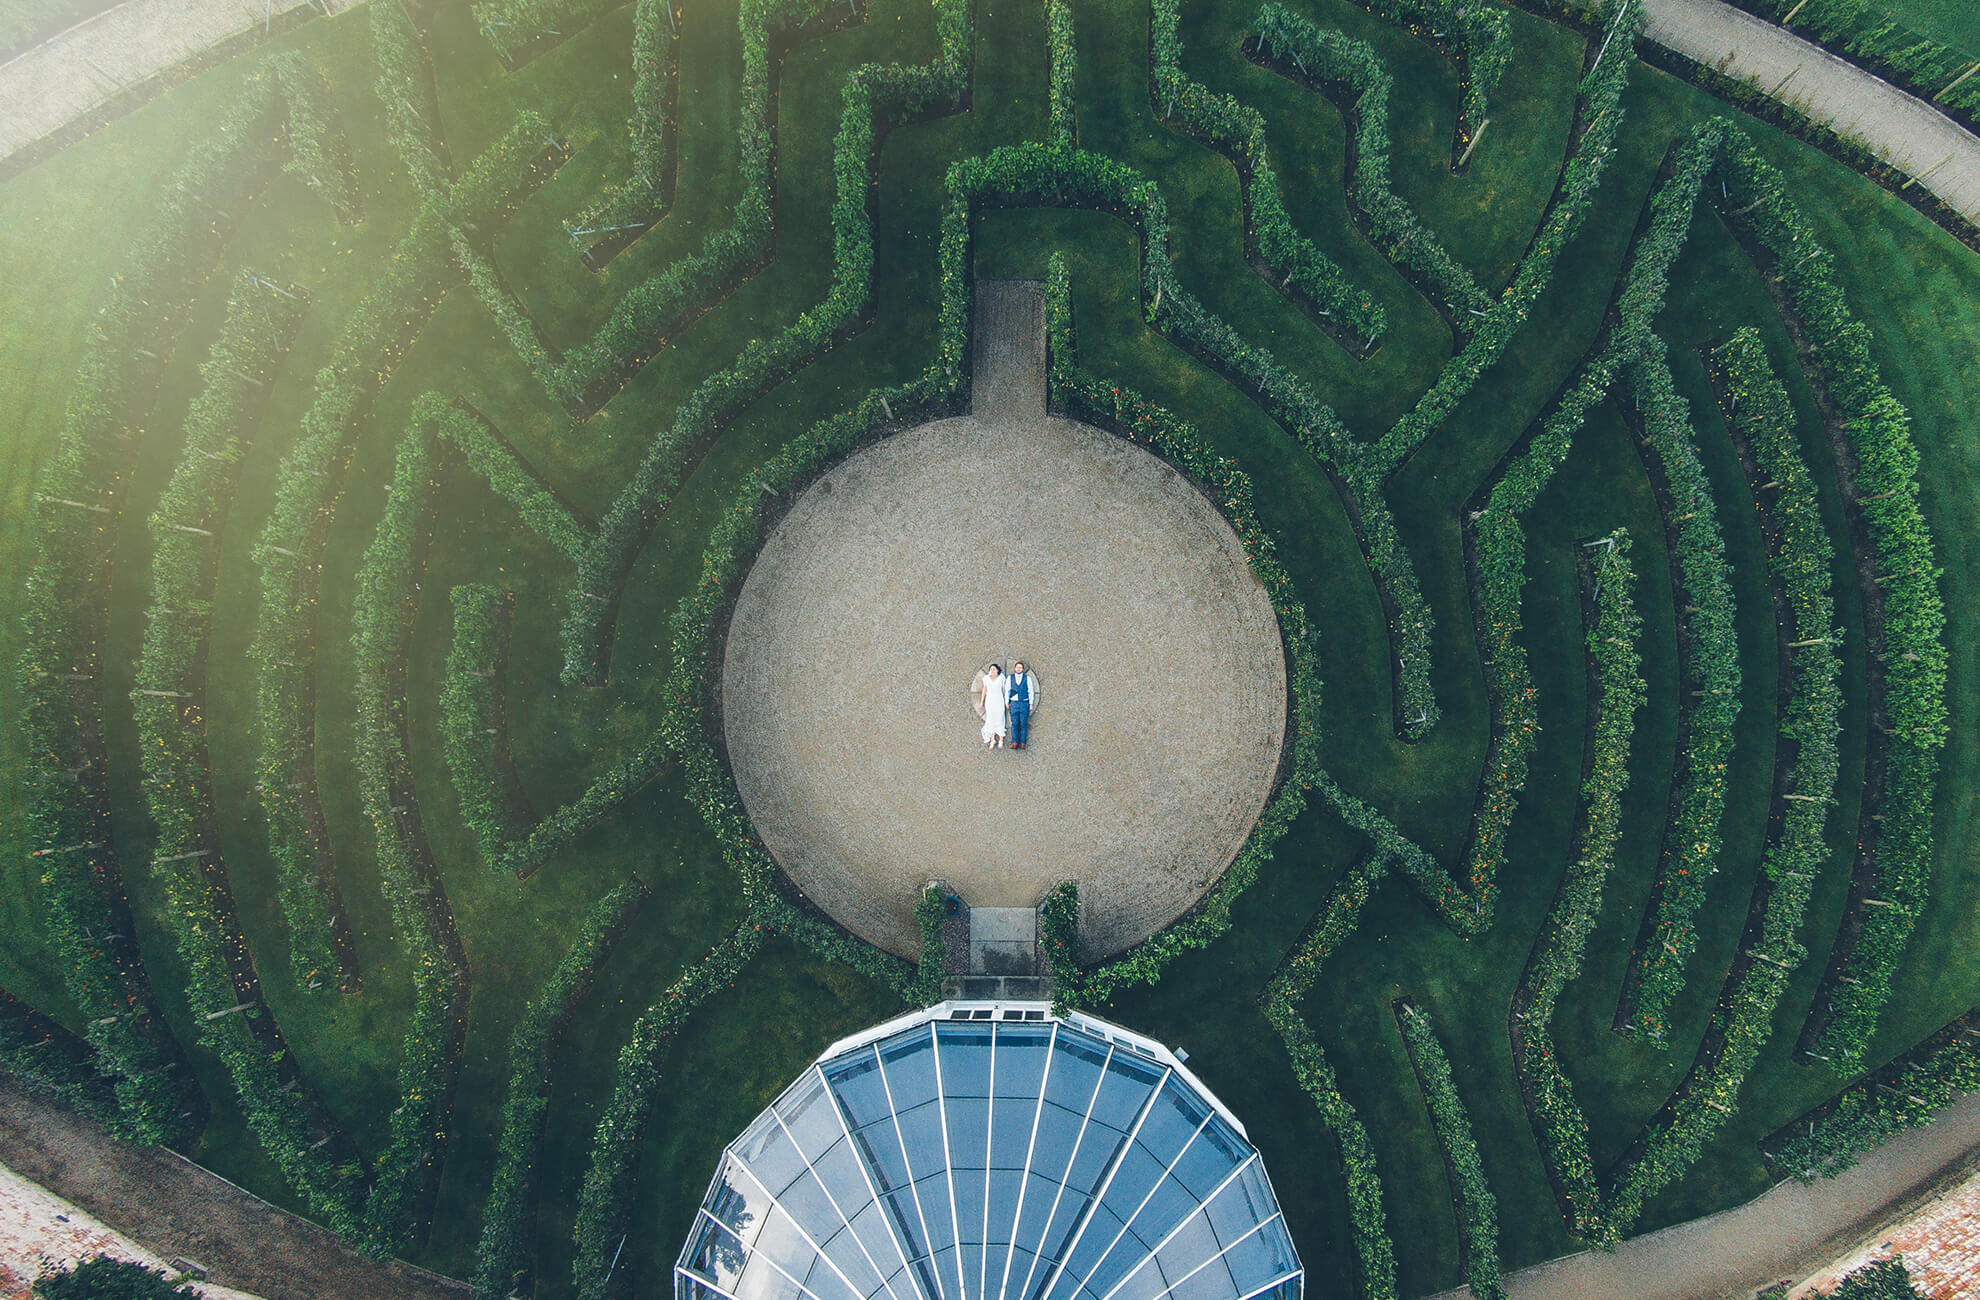 An aerial shot of a bride and groom in the middle of the fruit tree maze at Combermere Abbey in Cheshire